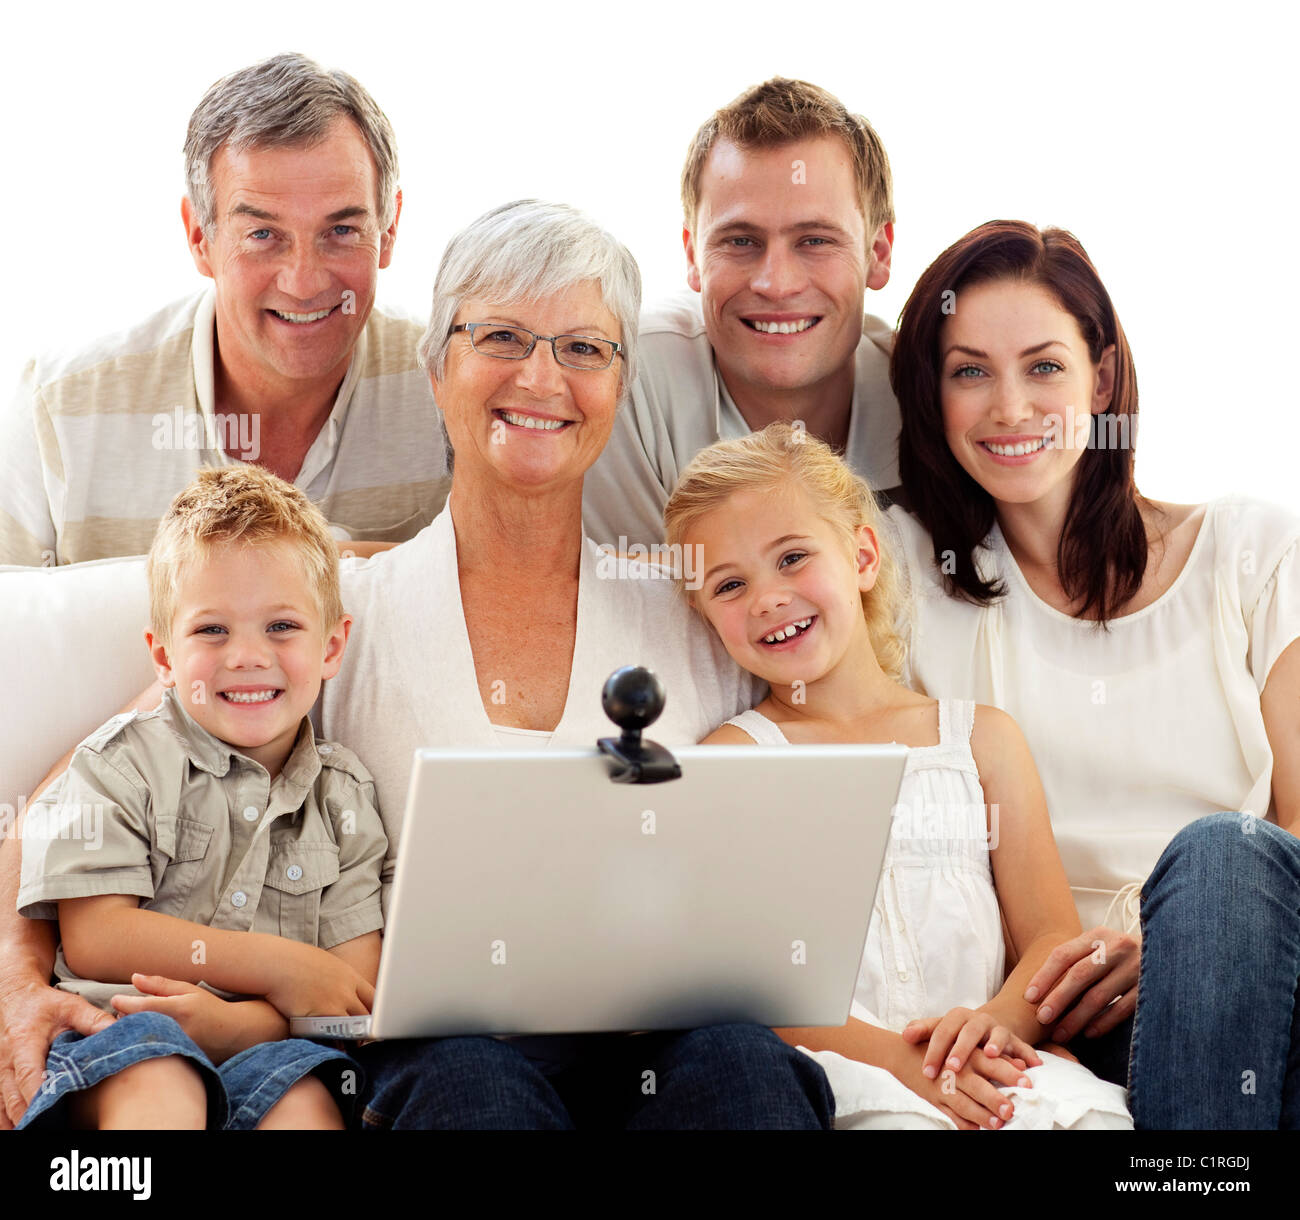 Happy family using a laptop at home - Stock Image